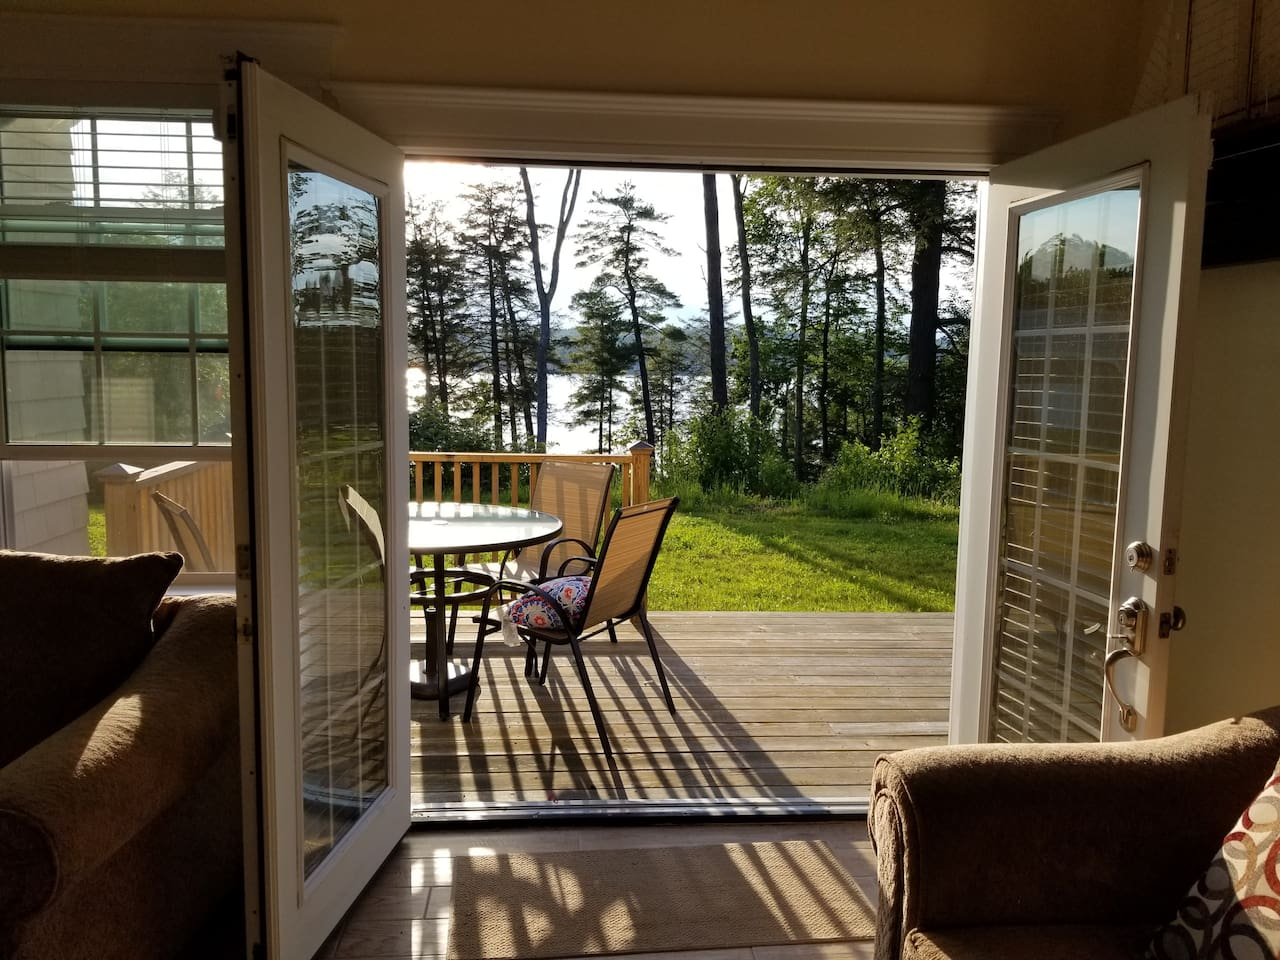 View from the dining table/kitchen. Open the french doors to get fresh air and an amazing view while cooking lobsters!